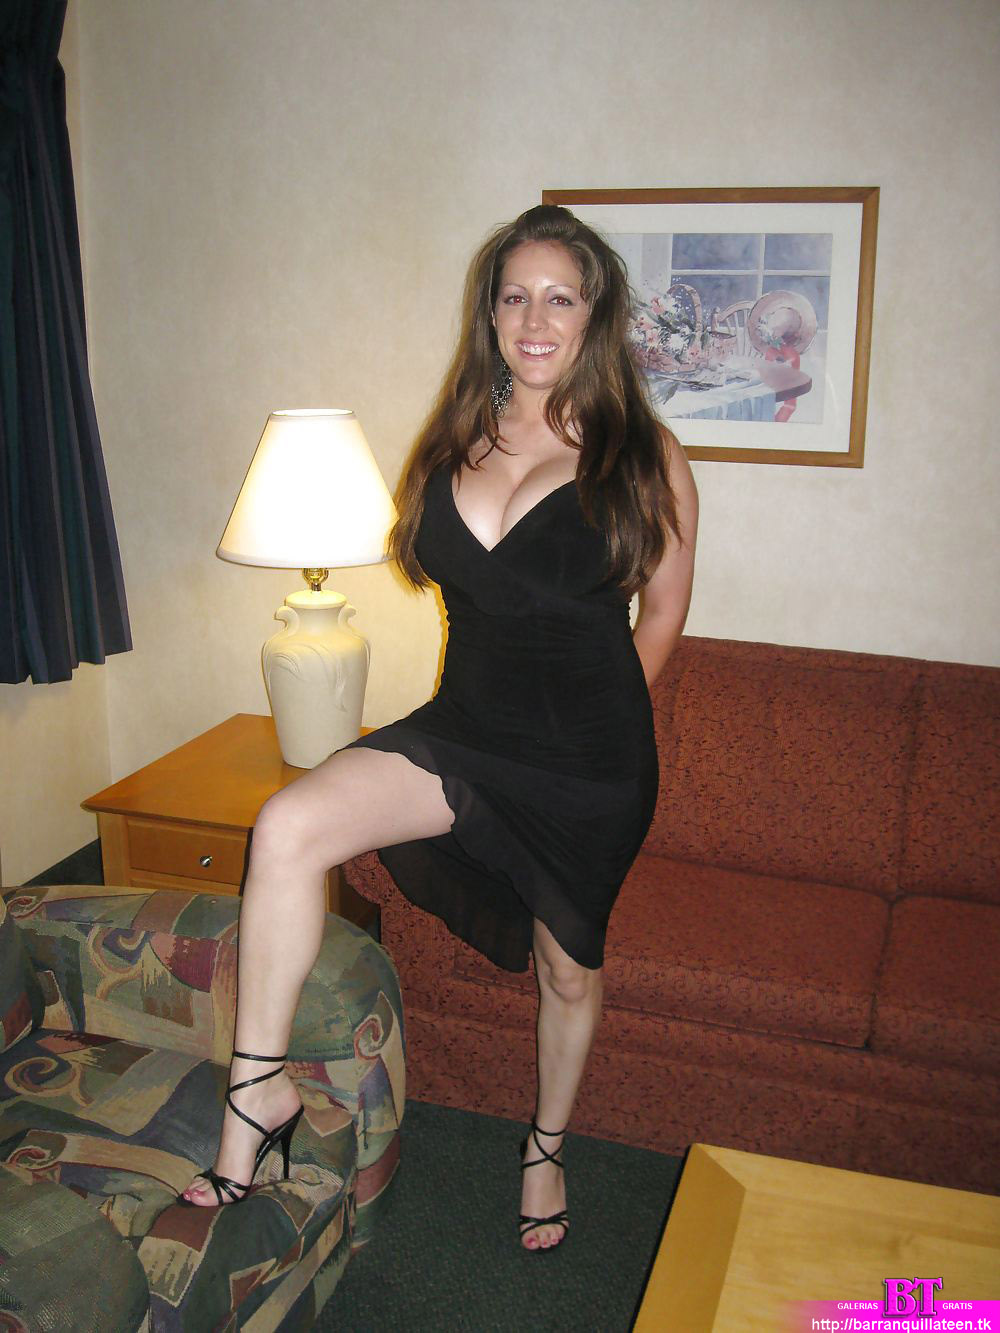 100 free chubby dating adult